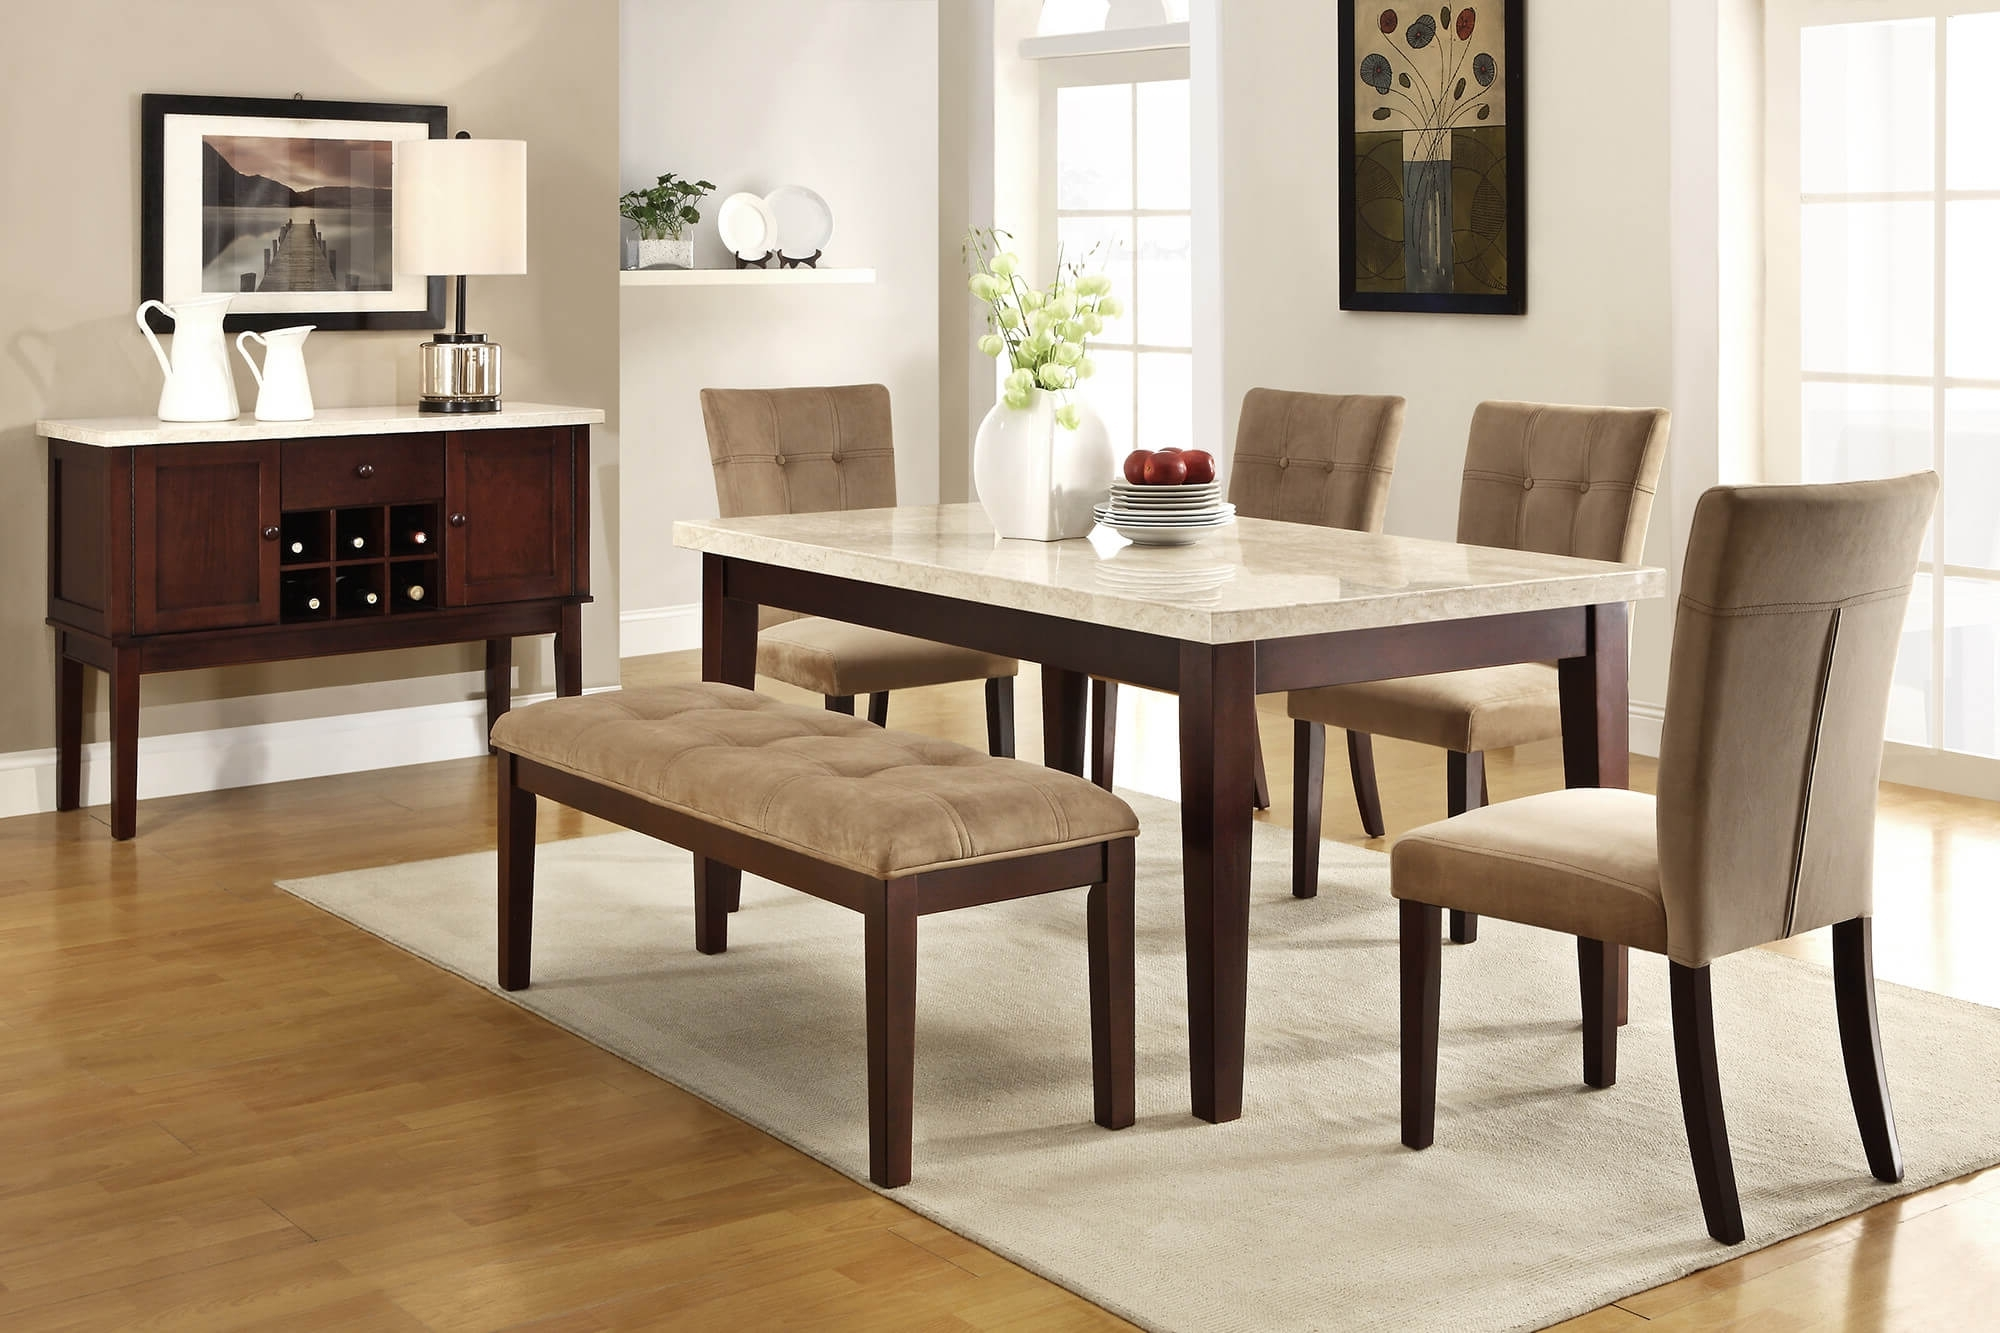 Cheap Dining Tables And Chairs Throughout Well Known 26 Dining Room Sets (Big And Small) With Bench Seating (2018) (View 10 of 25)